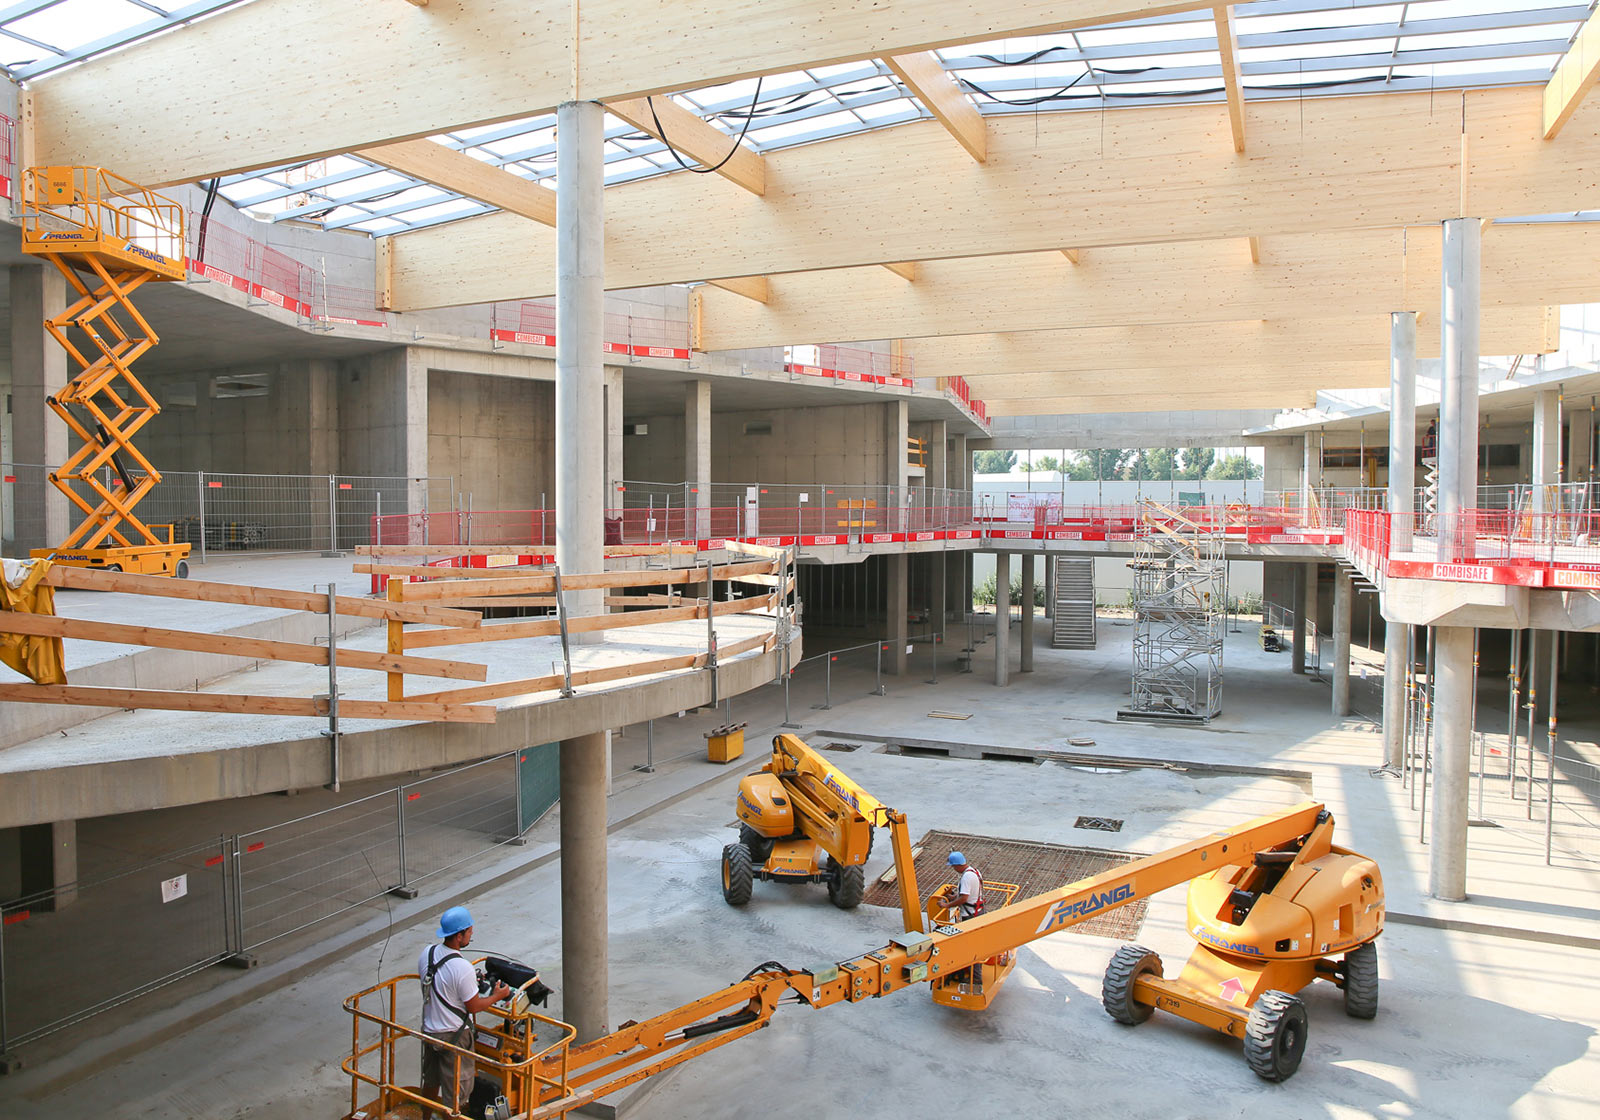 The powerful timber construction of the roof soars over the new mall. Photo: Katharina Schiffl